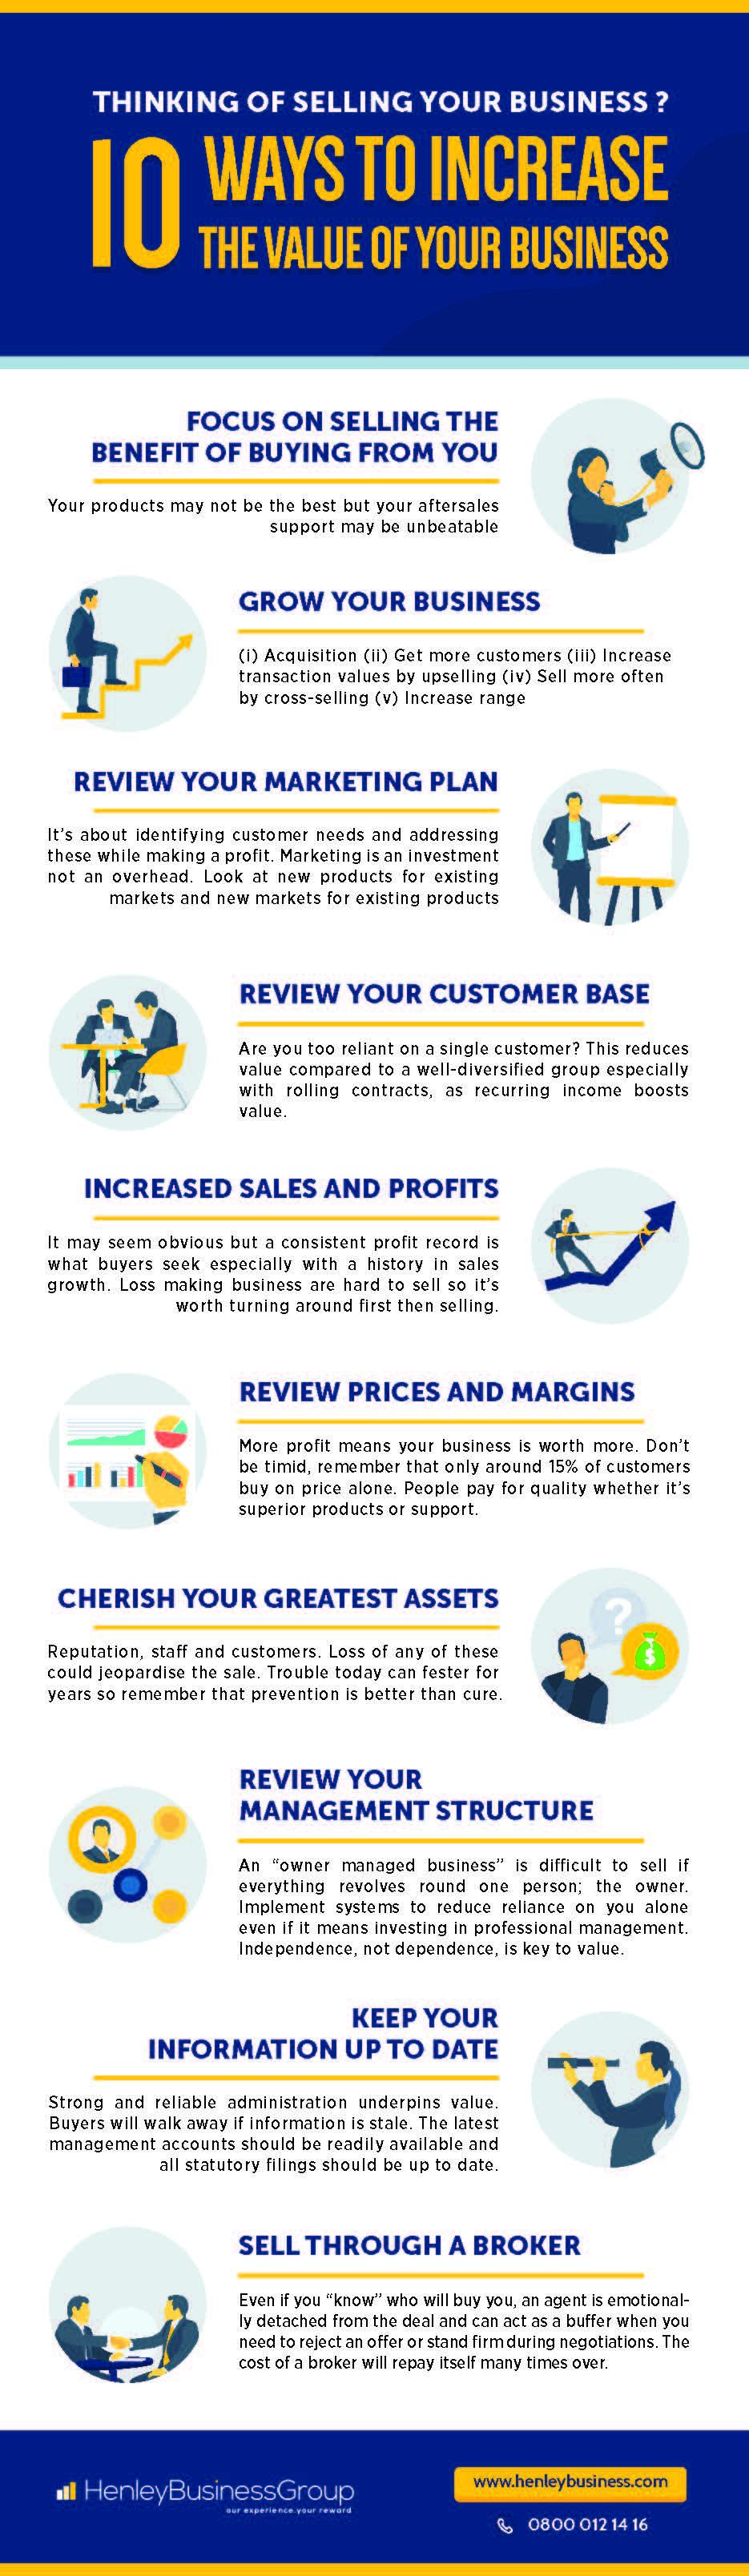 10 ways to increase the value of a business when selling